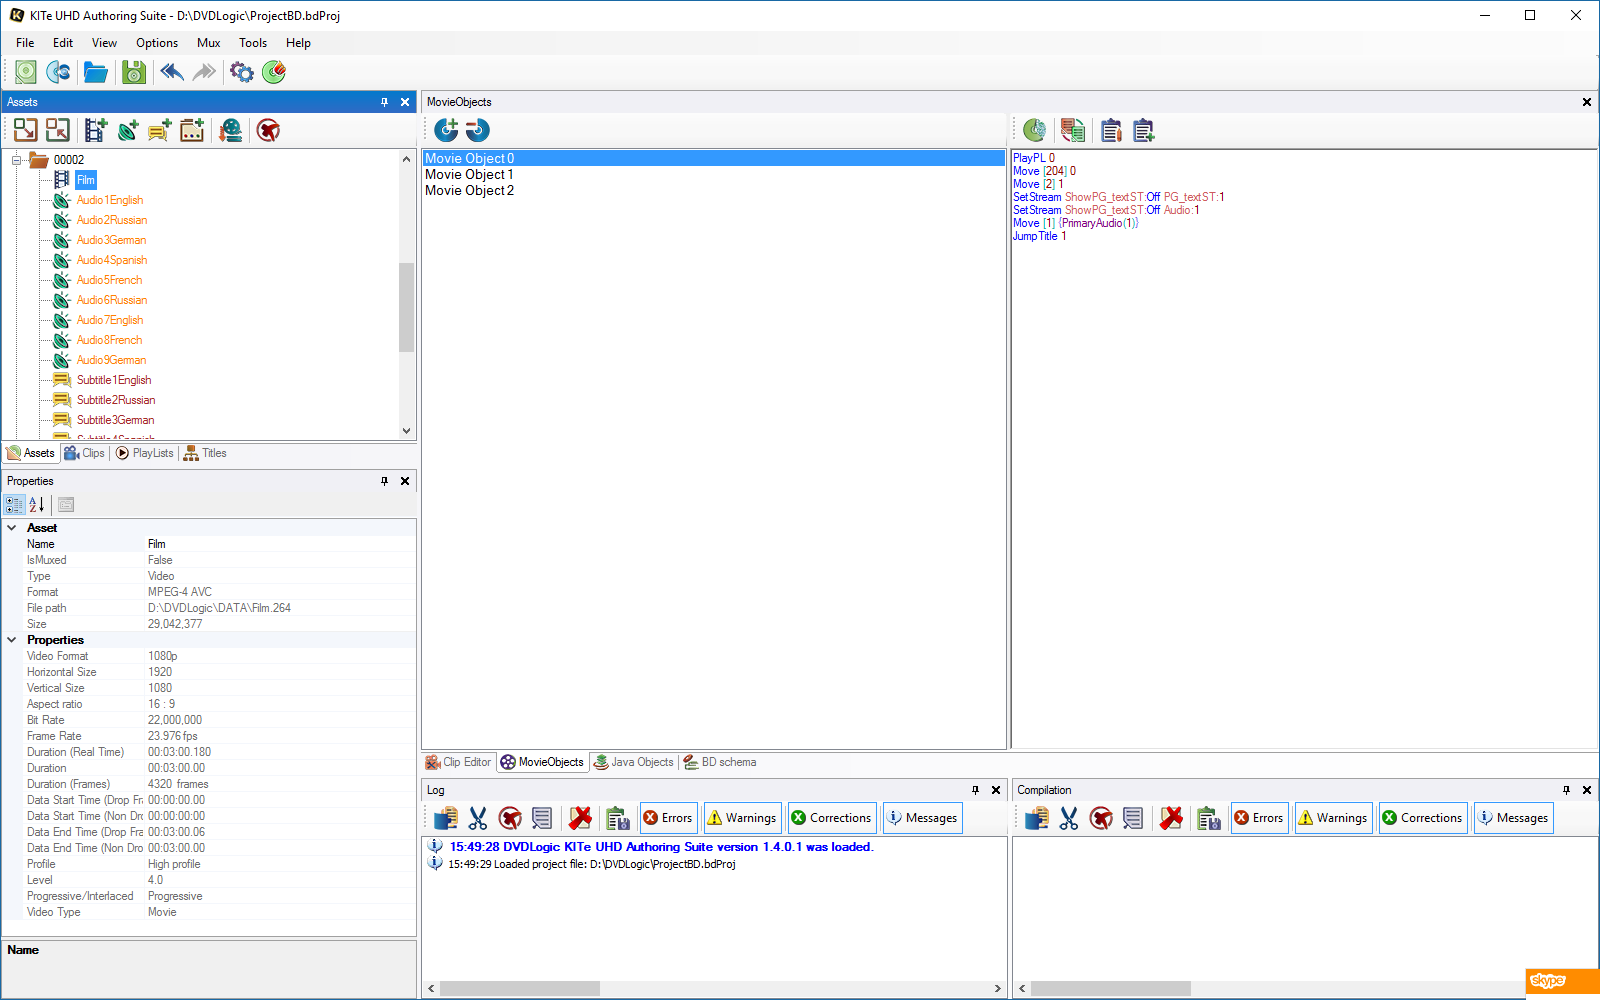 HDMV commands editor